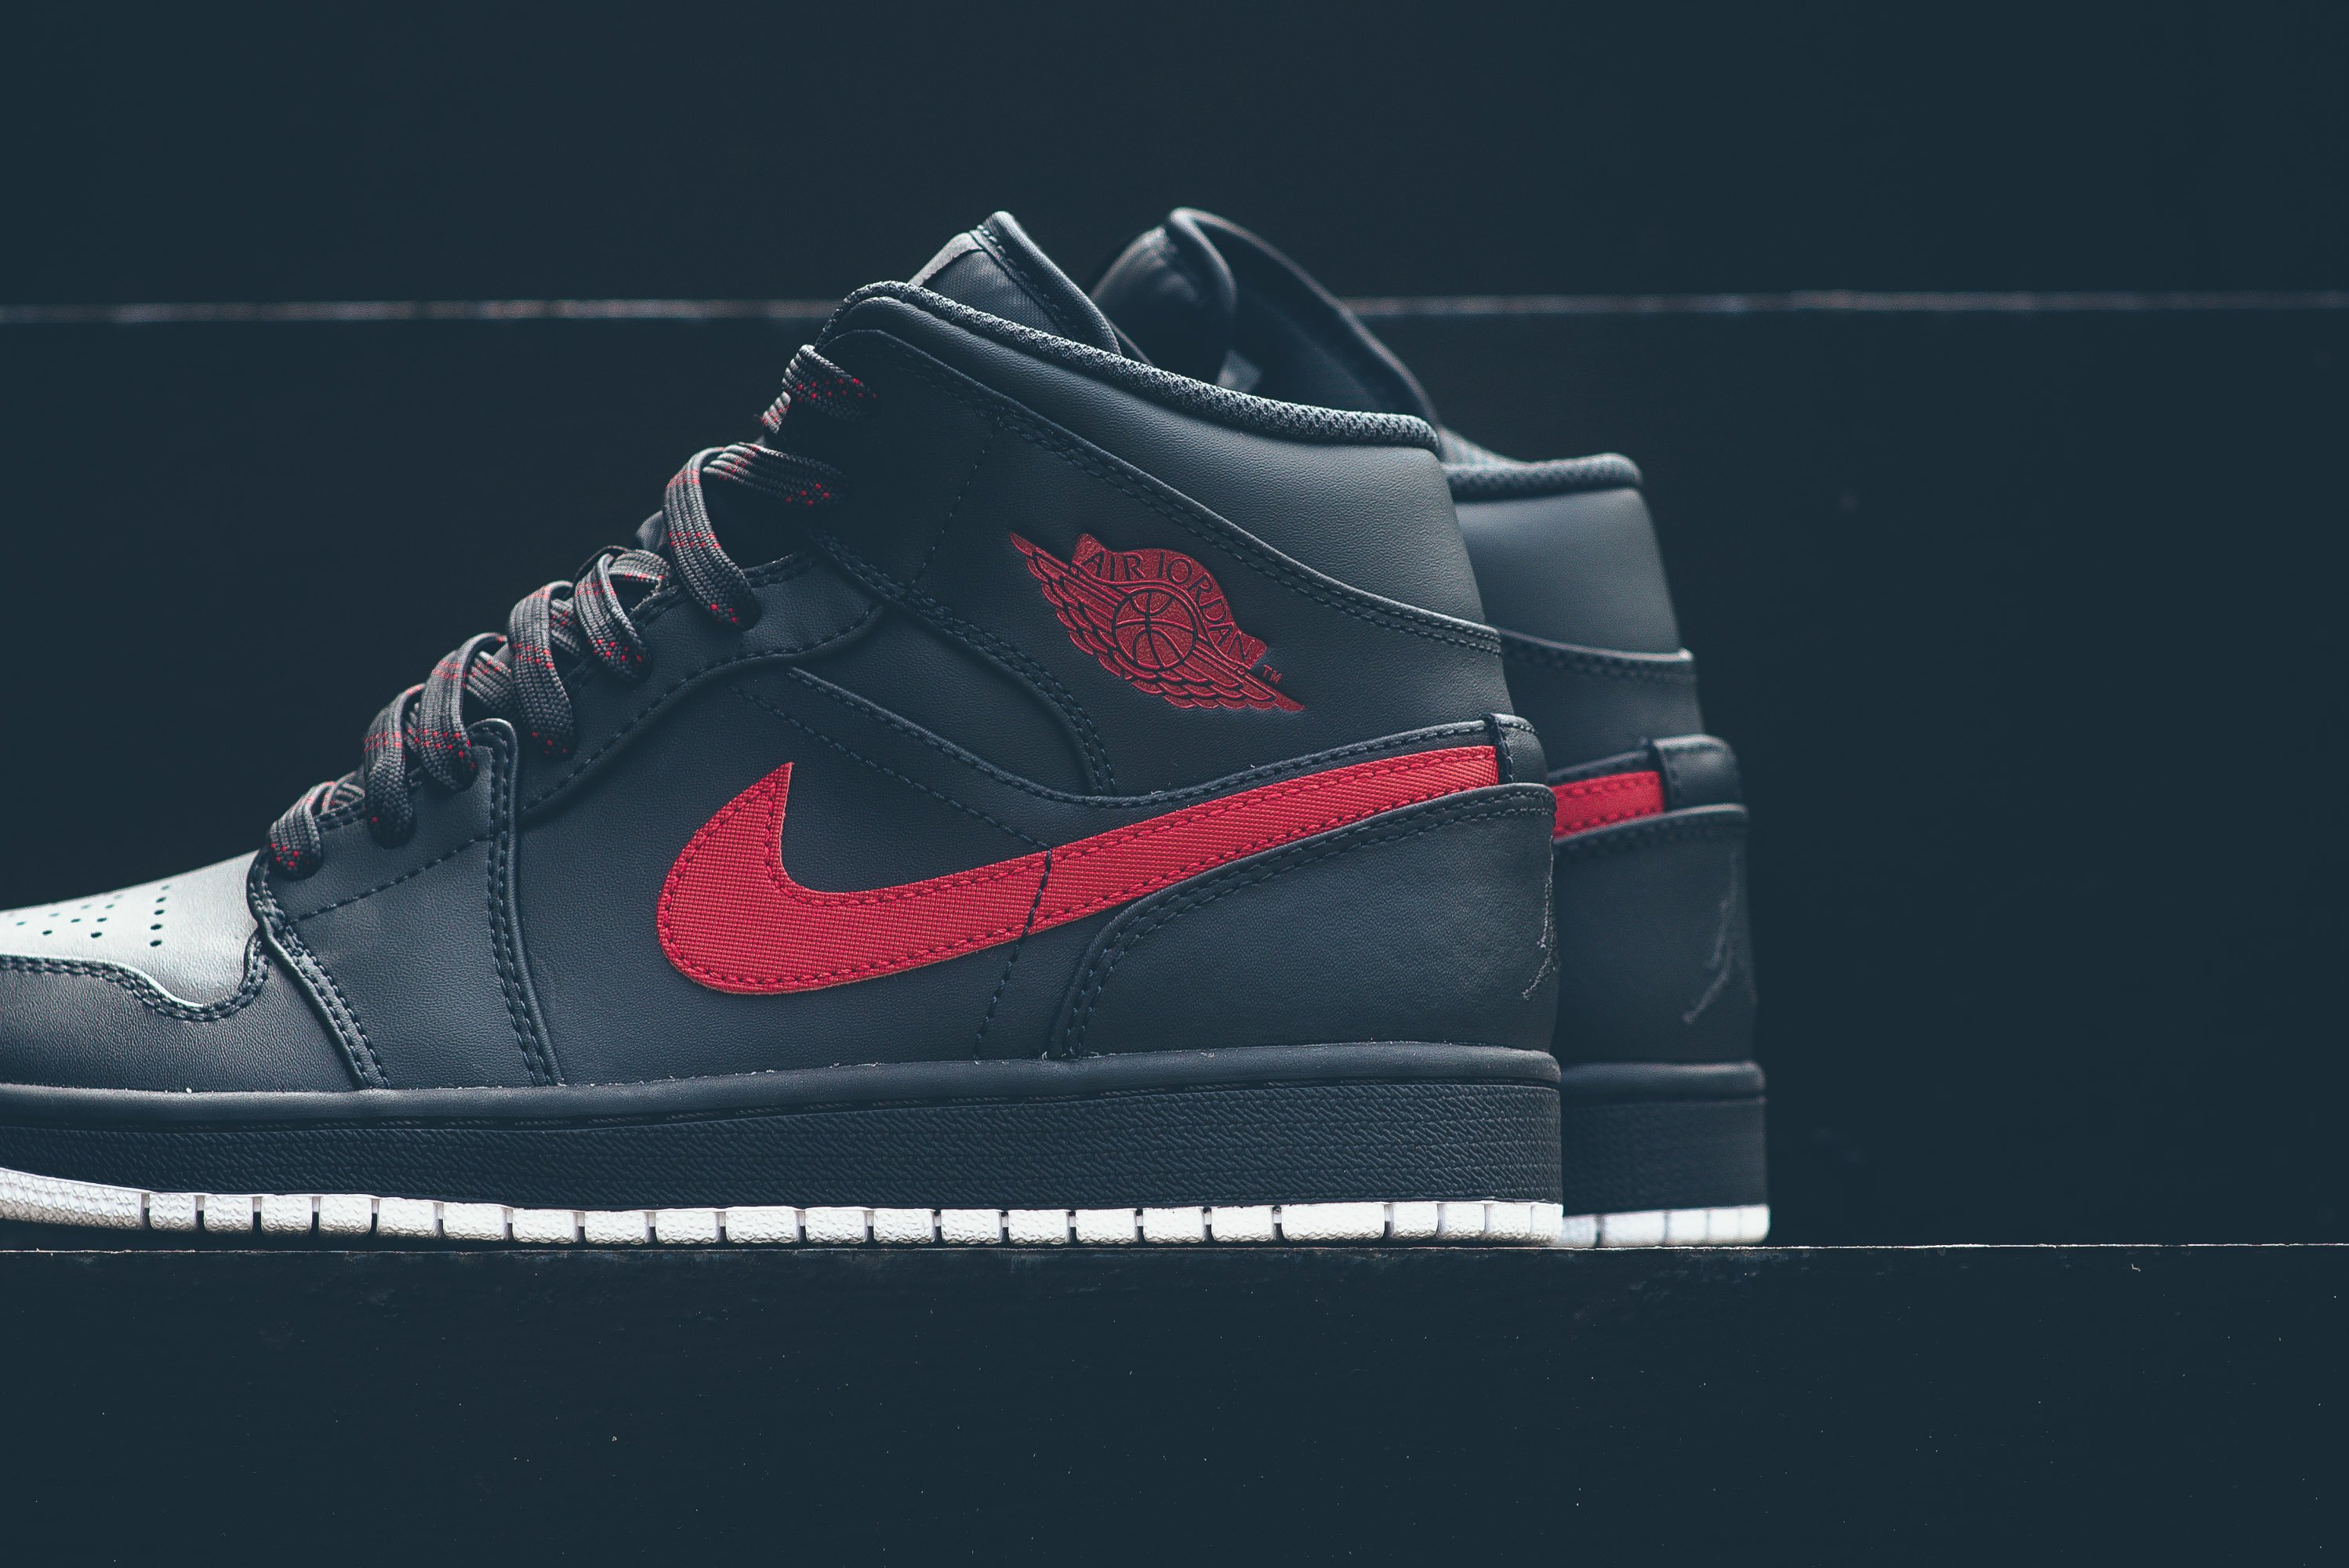 info for f787c 859e3 Air Jordan 1 Mid Color  Anthracite Gym Red-White Style Code  554724-045.  Price   110.00